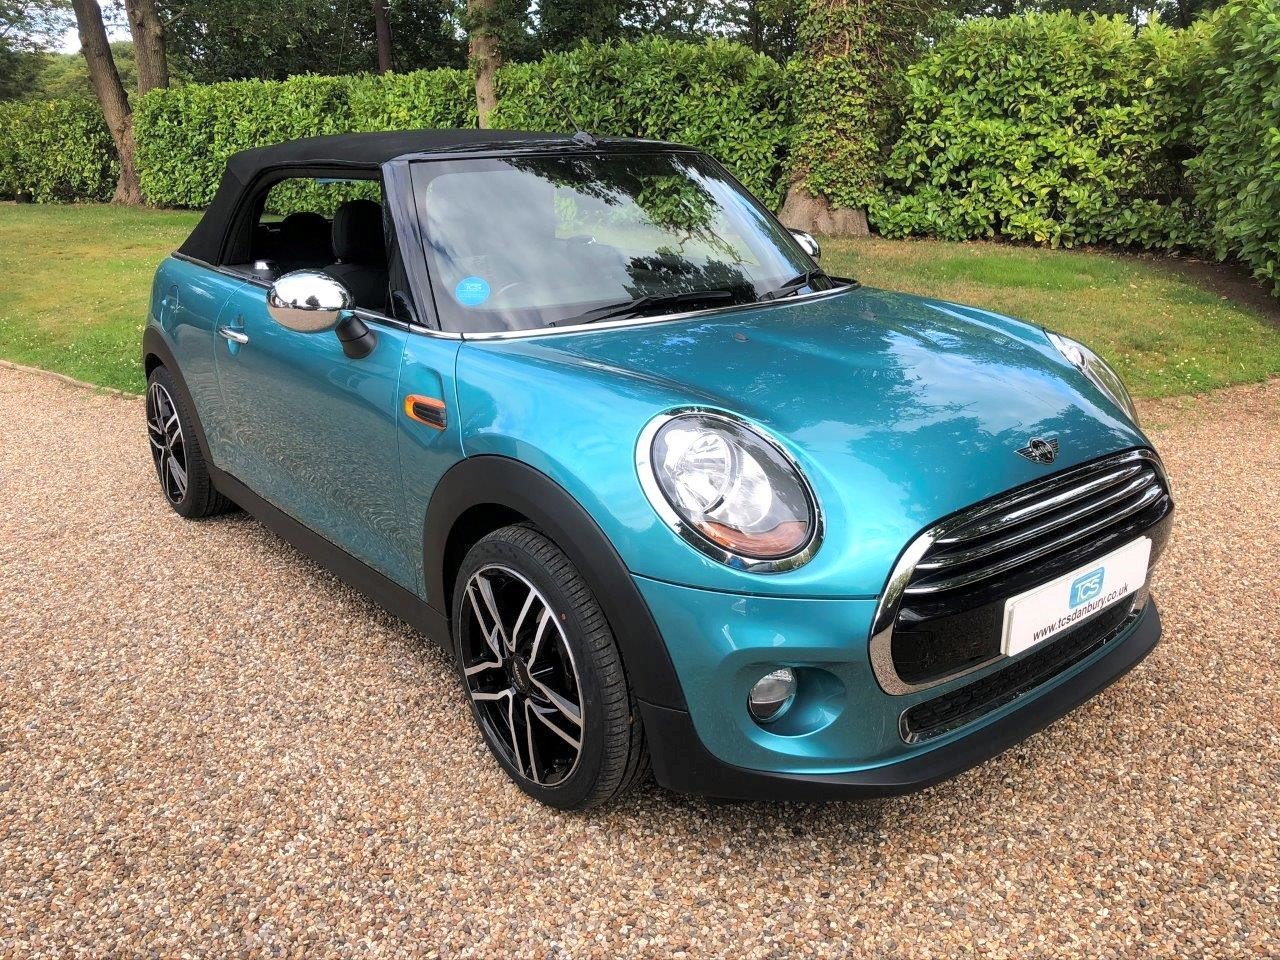 2018 MINI Cooper Convertible 1.5i Turbo 134bhp 6-Speed Manual SOLD (picture 1 of 6)